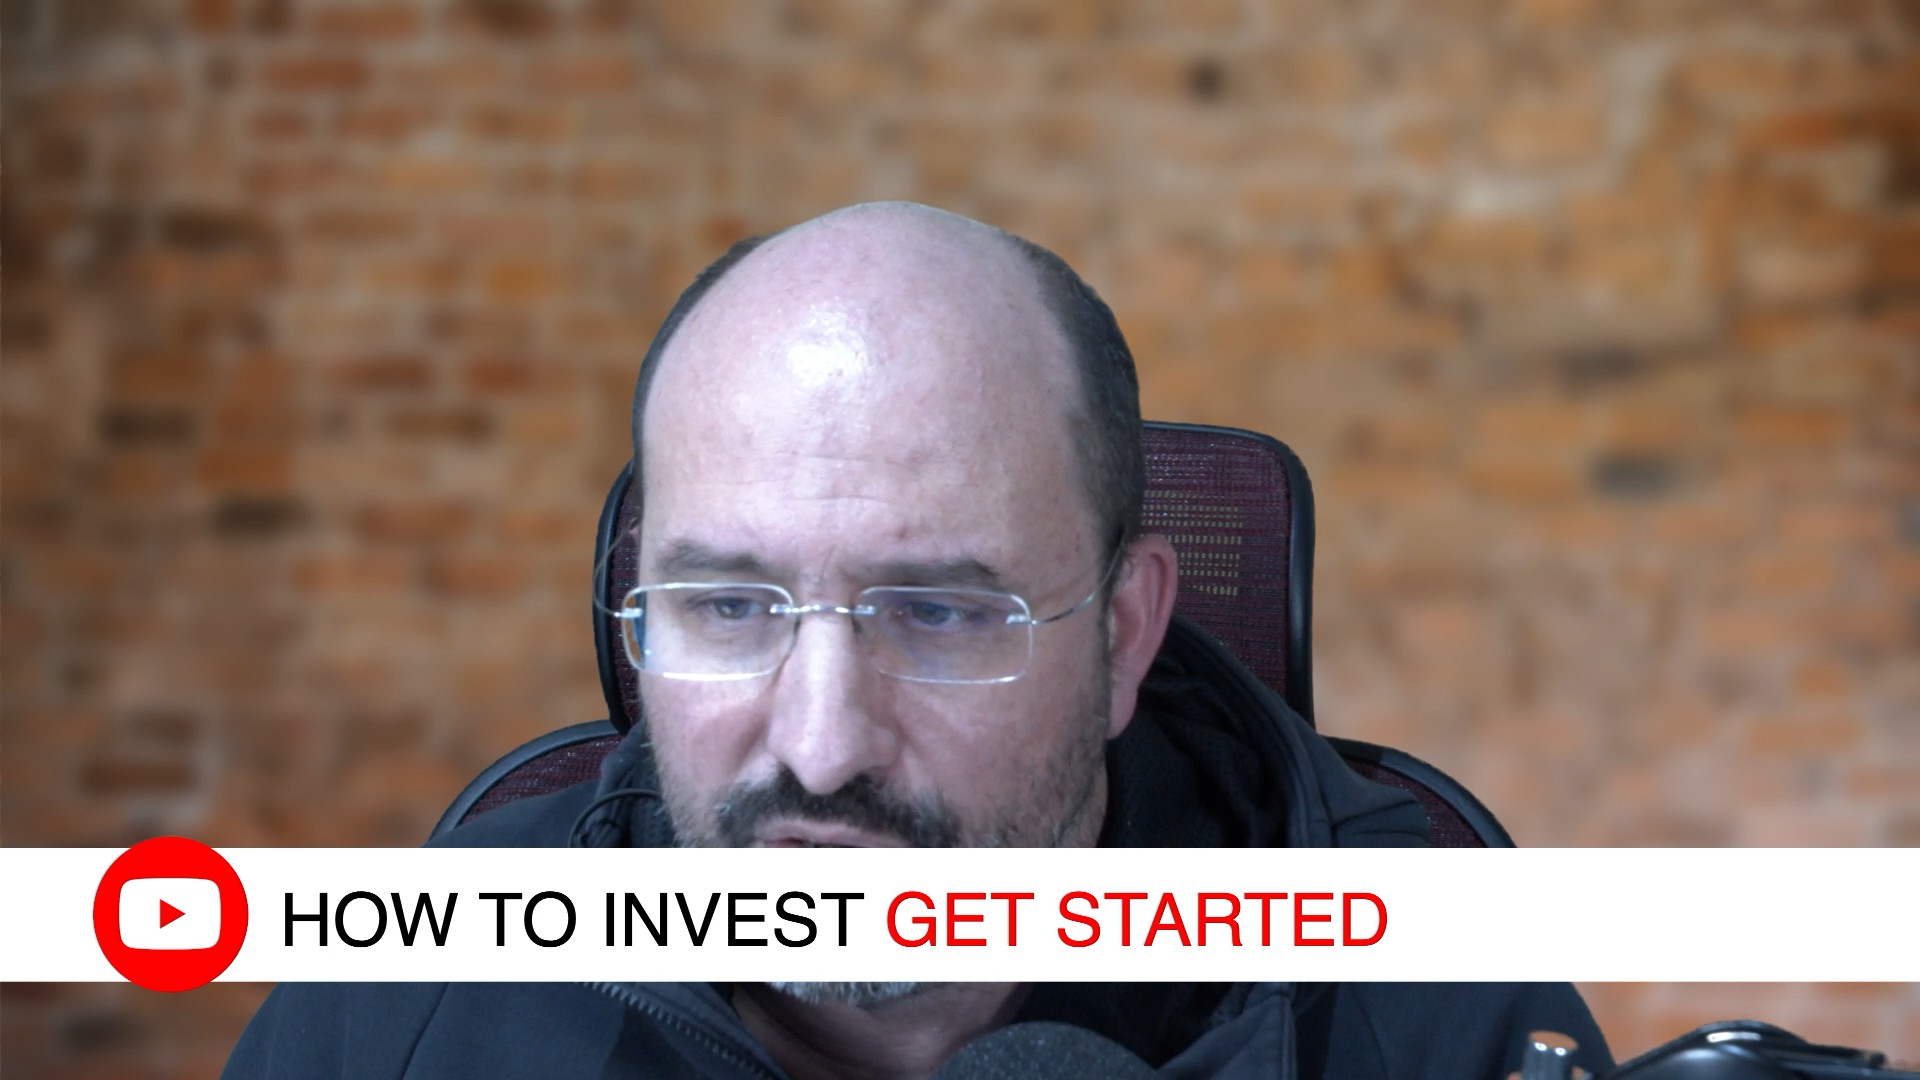 how-to-invest-get-started.jpeg